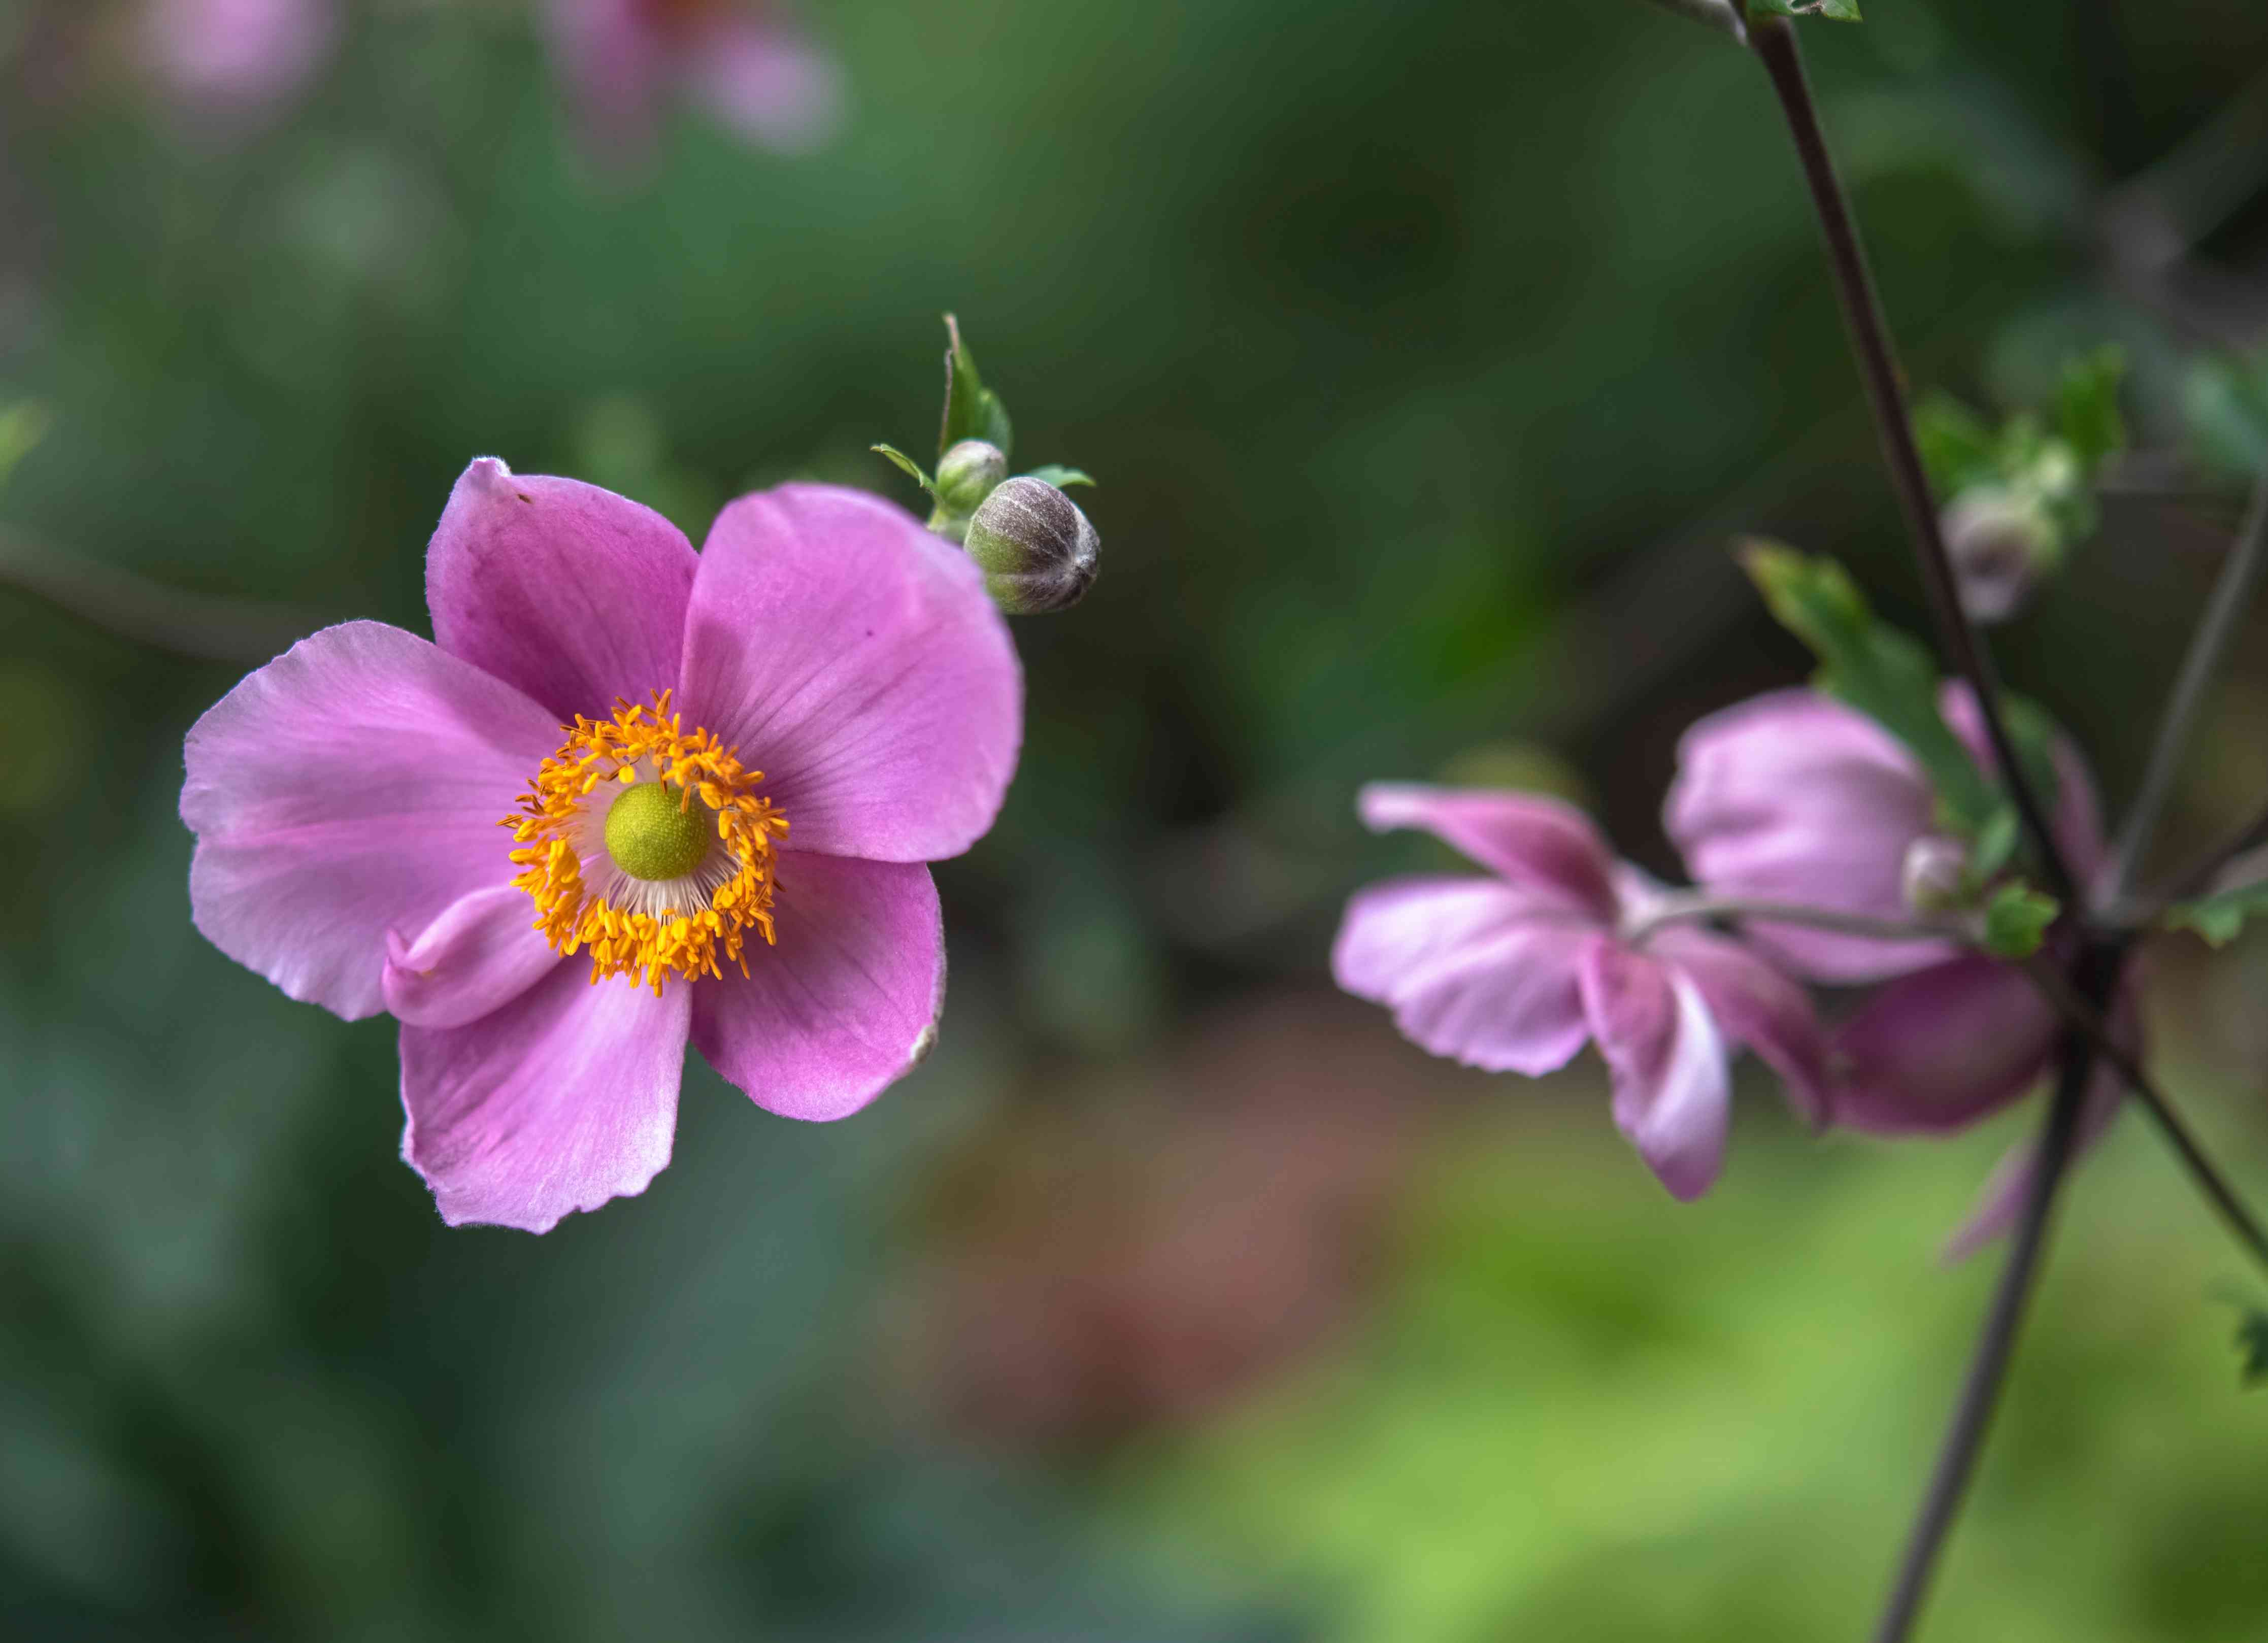 'Hadspen abundance' anemone flowers and buds with pink petals and yellow anthers